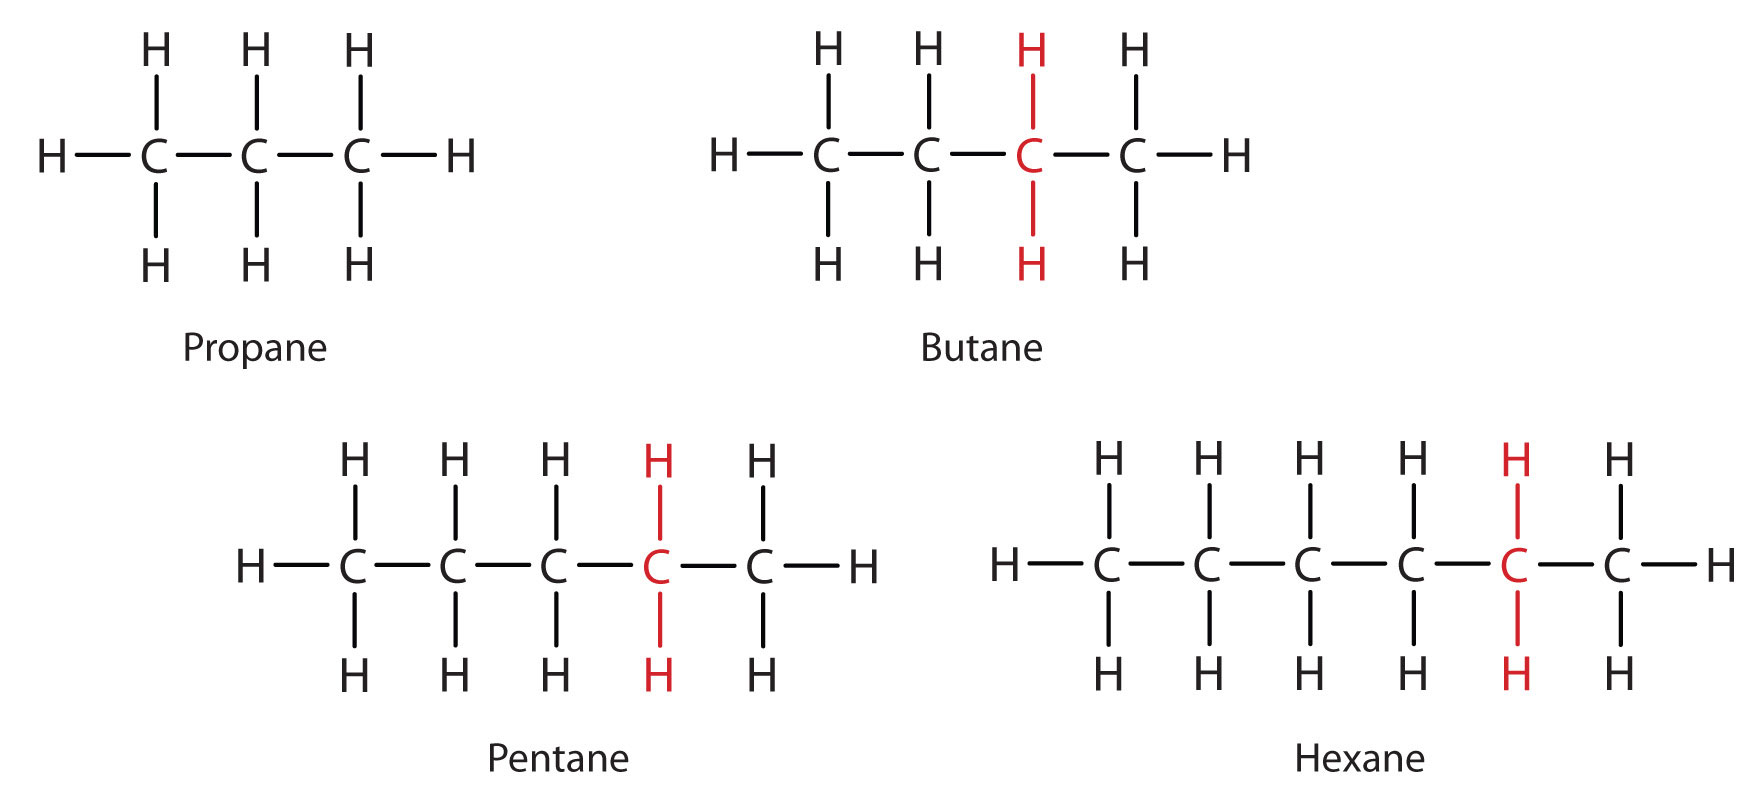 Ch105 Chapter 7 Alkanes And Halogenated Hydrocarbons Chemistry